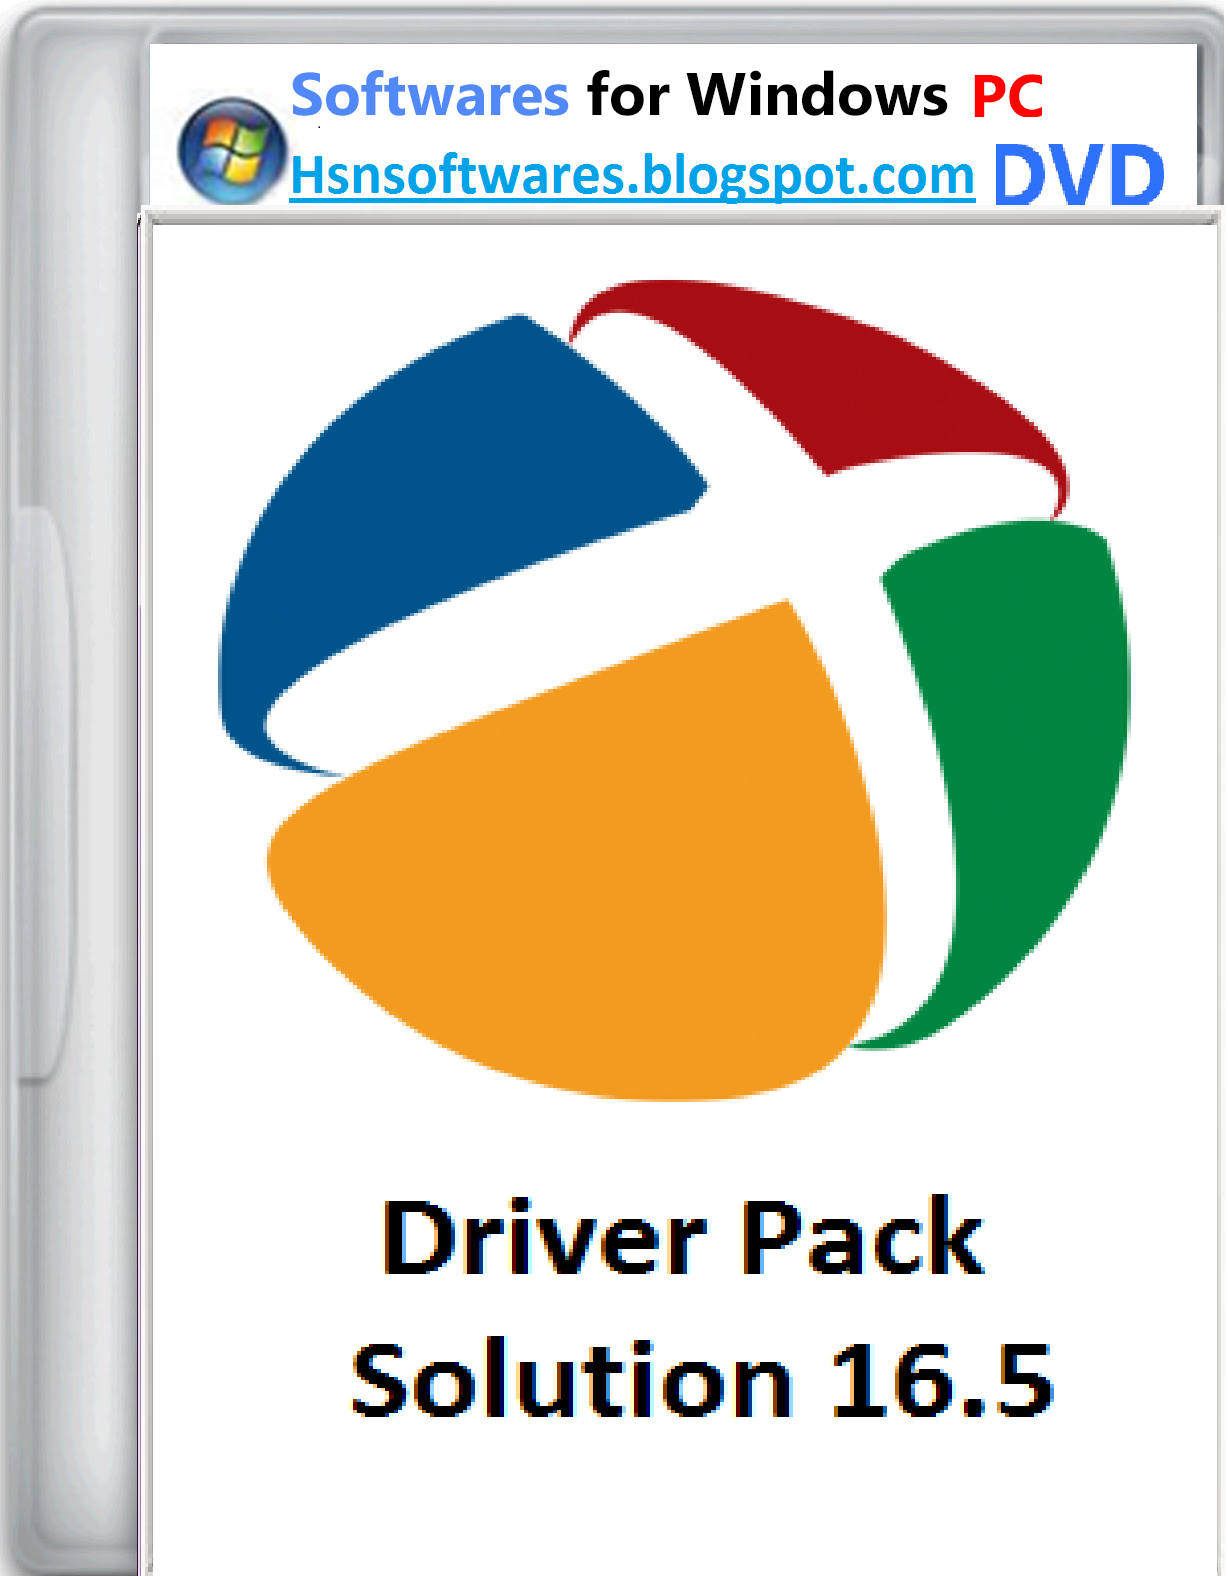 driverpack solution free download latest version